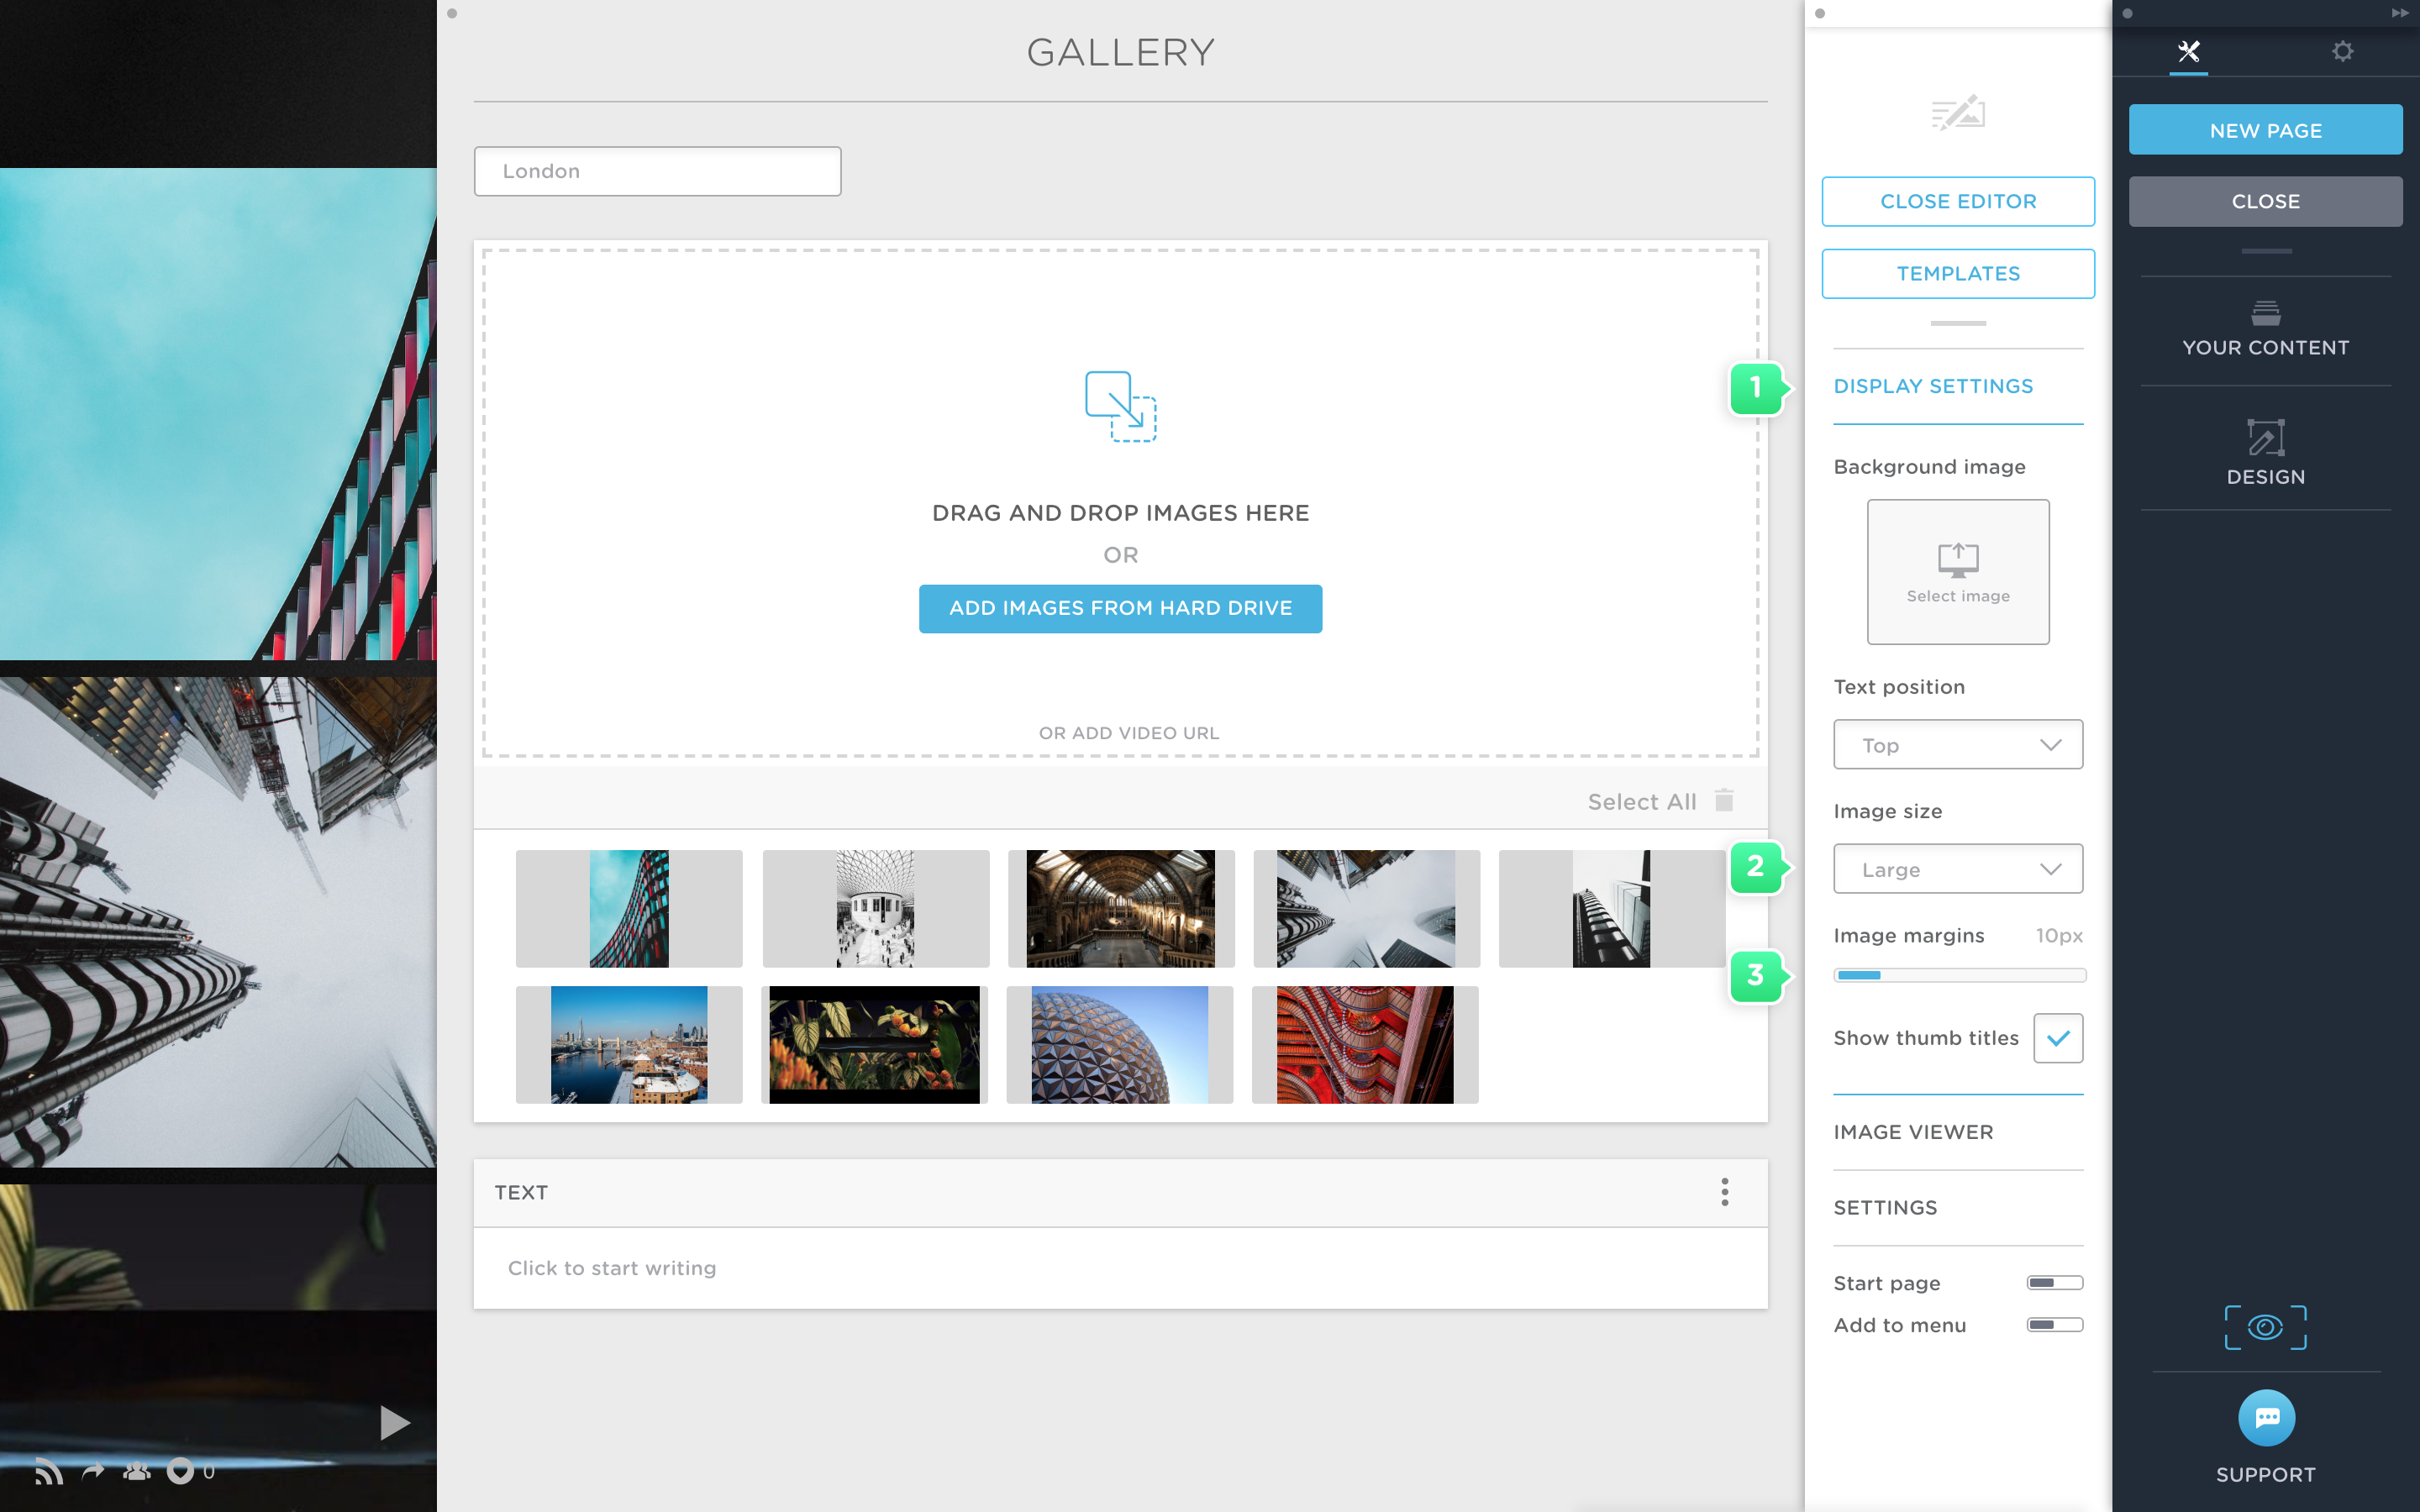 Define the image size and margins in your gallery